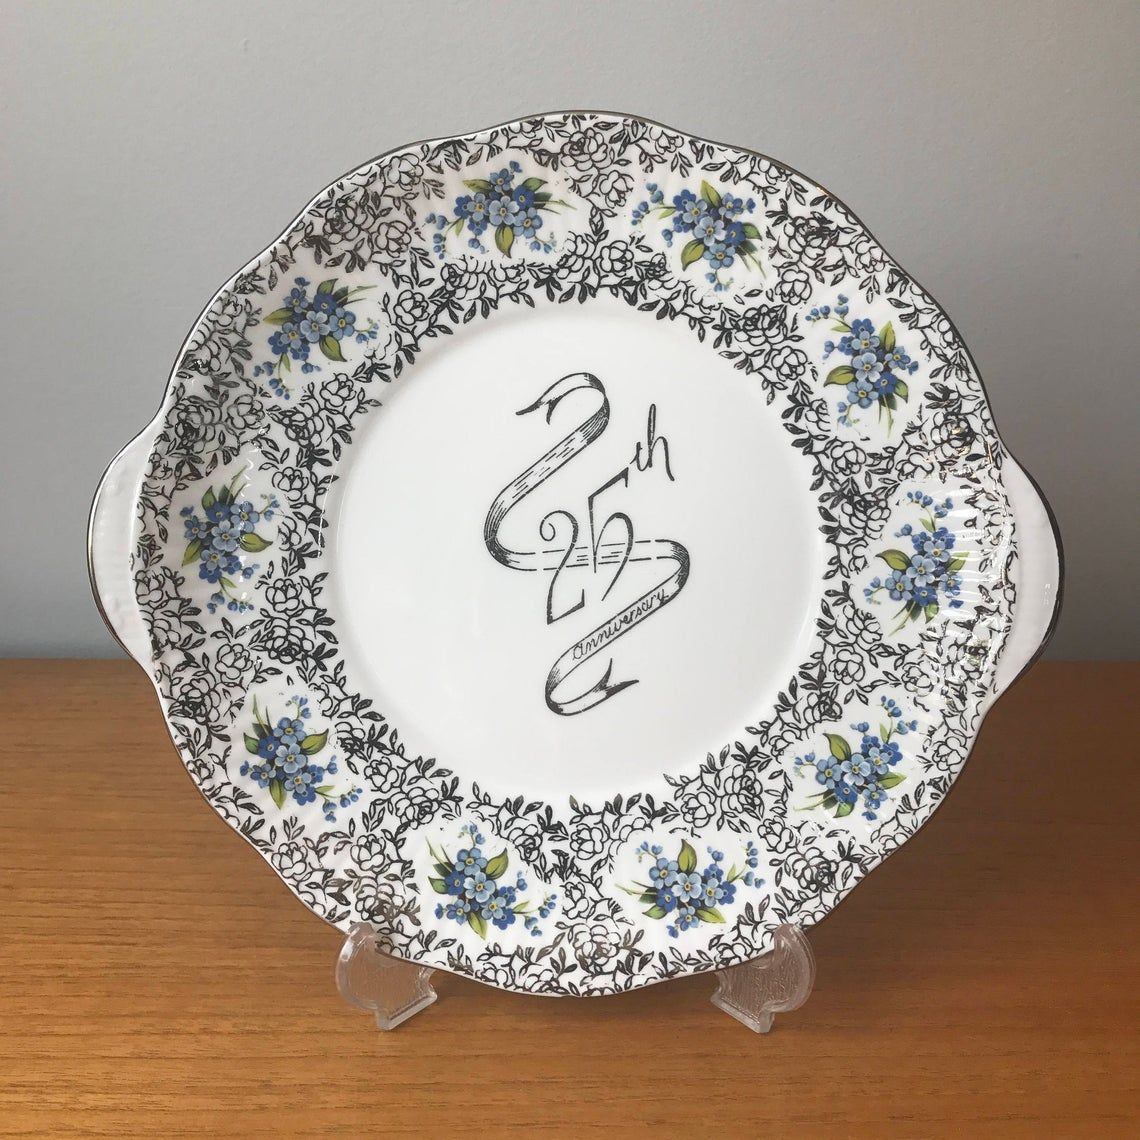 Elizabethan 25th Silver Anniversary Vintage Cake Plate, Blue Forget Me Nots, Silver Ribbon Chintz Border Dessert Tray, Bone China Dish